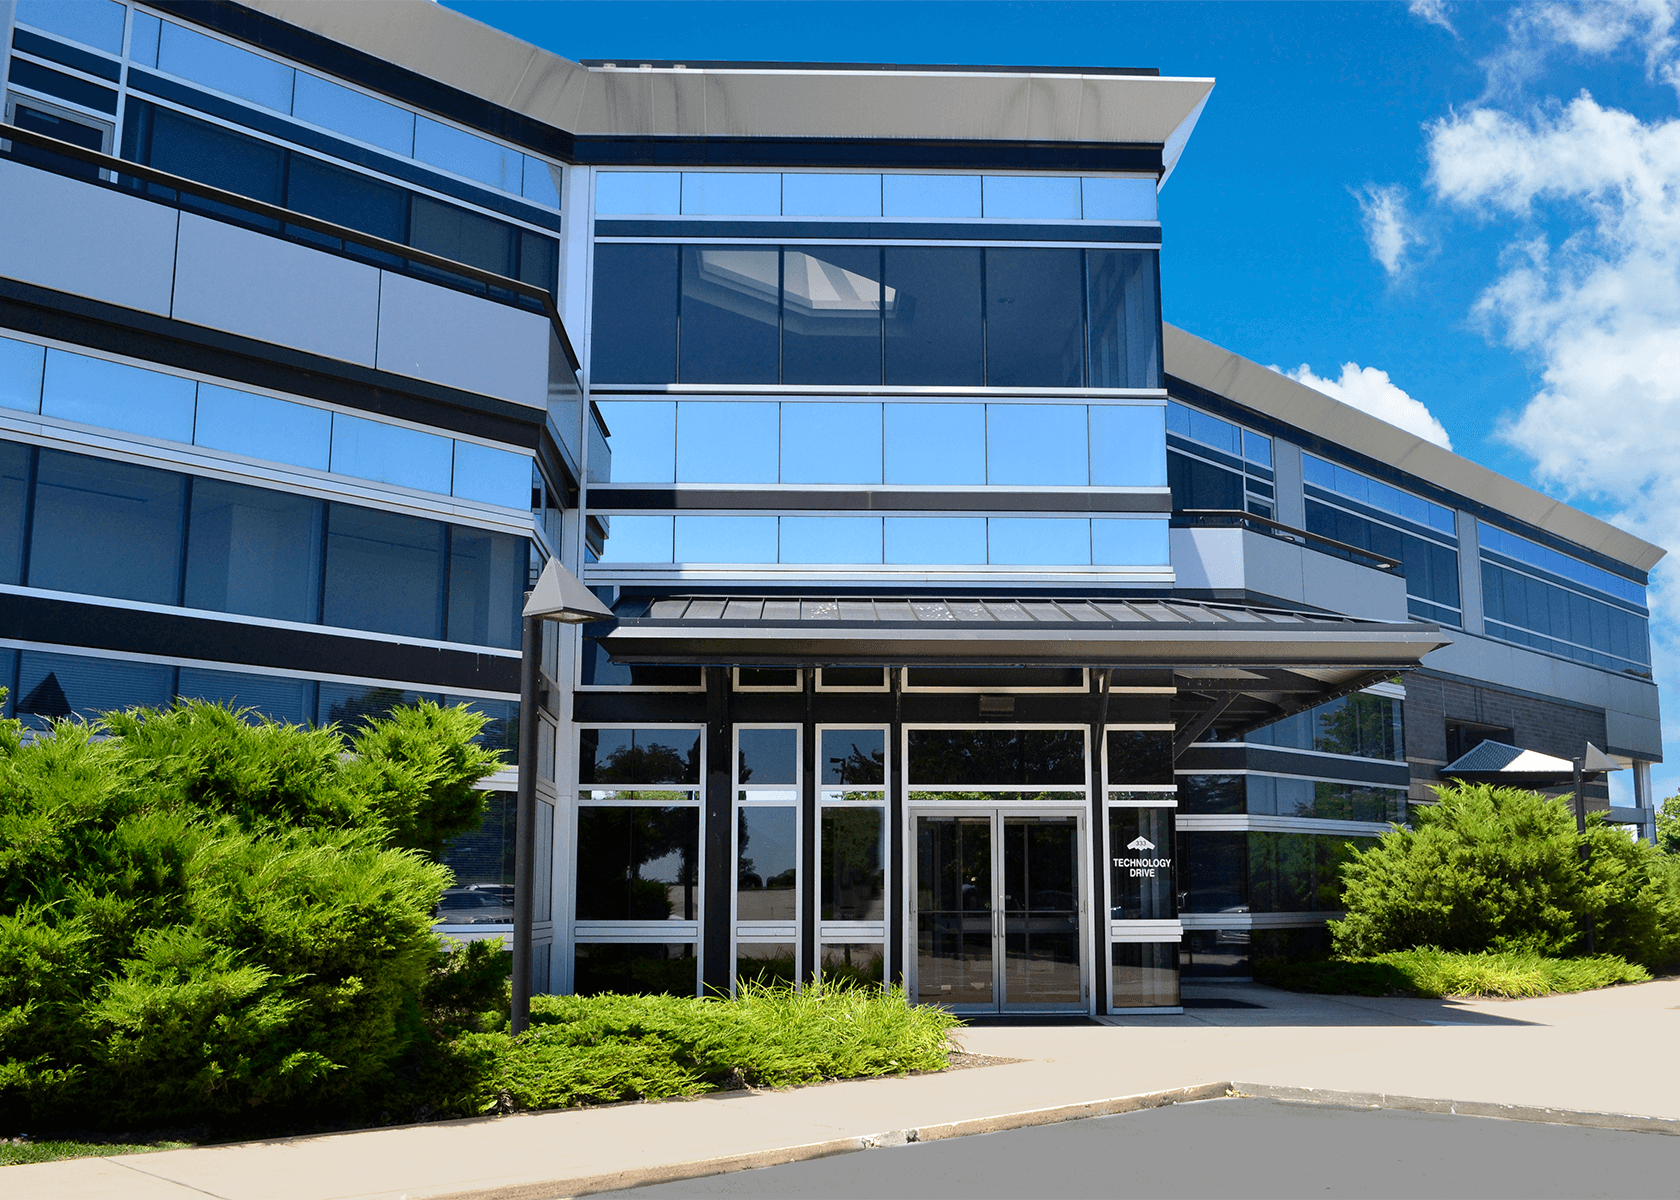 exterior of Stealth Technology Center entrance